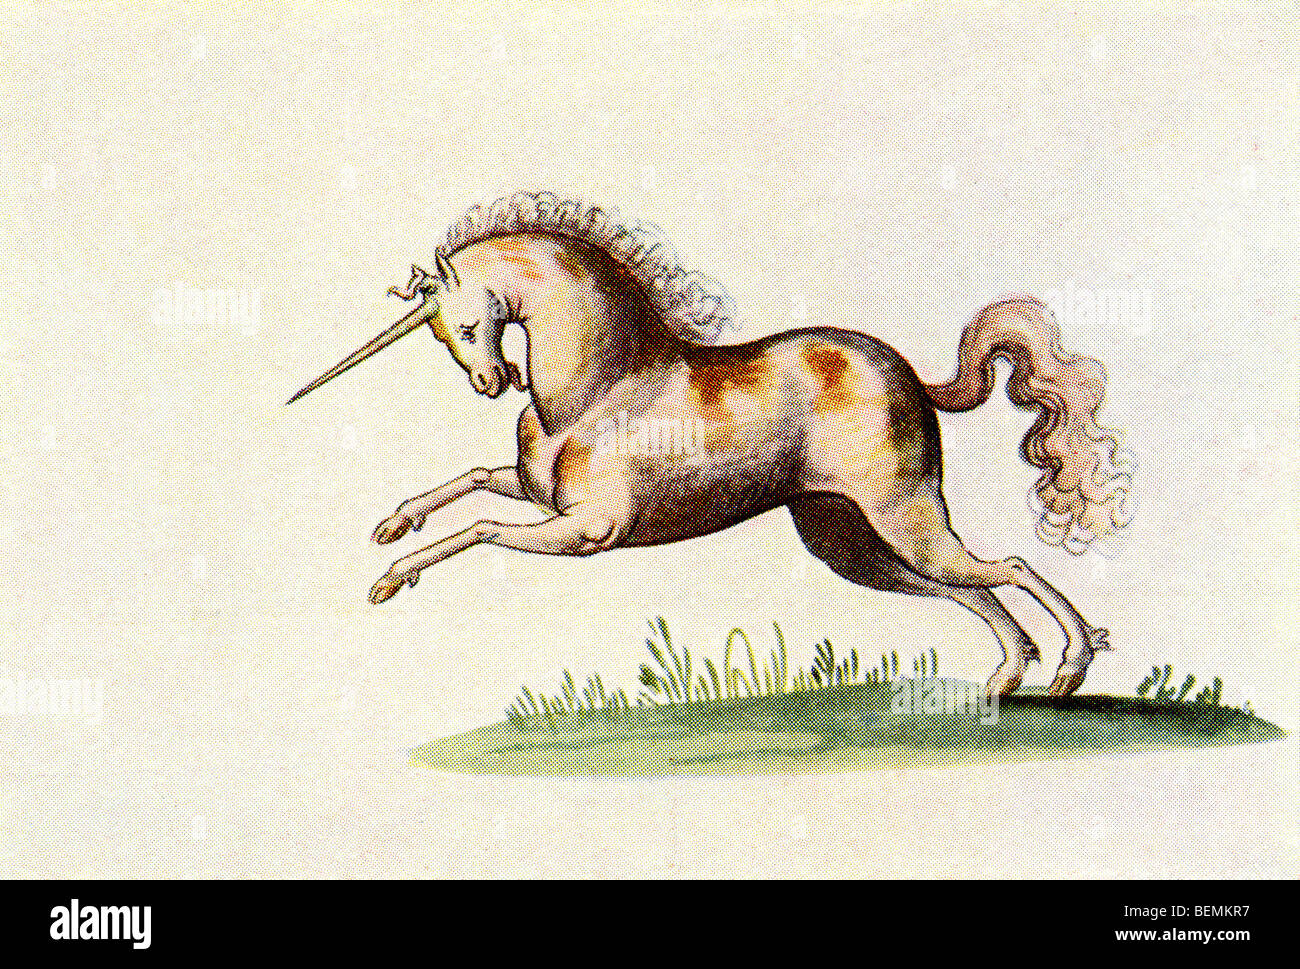 The Unicorn. After an illustration from The Livre d'Amis of Marguerite de Valois in The Illustrated London News, - Stock Image